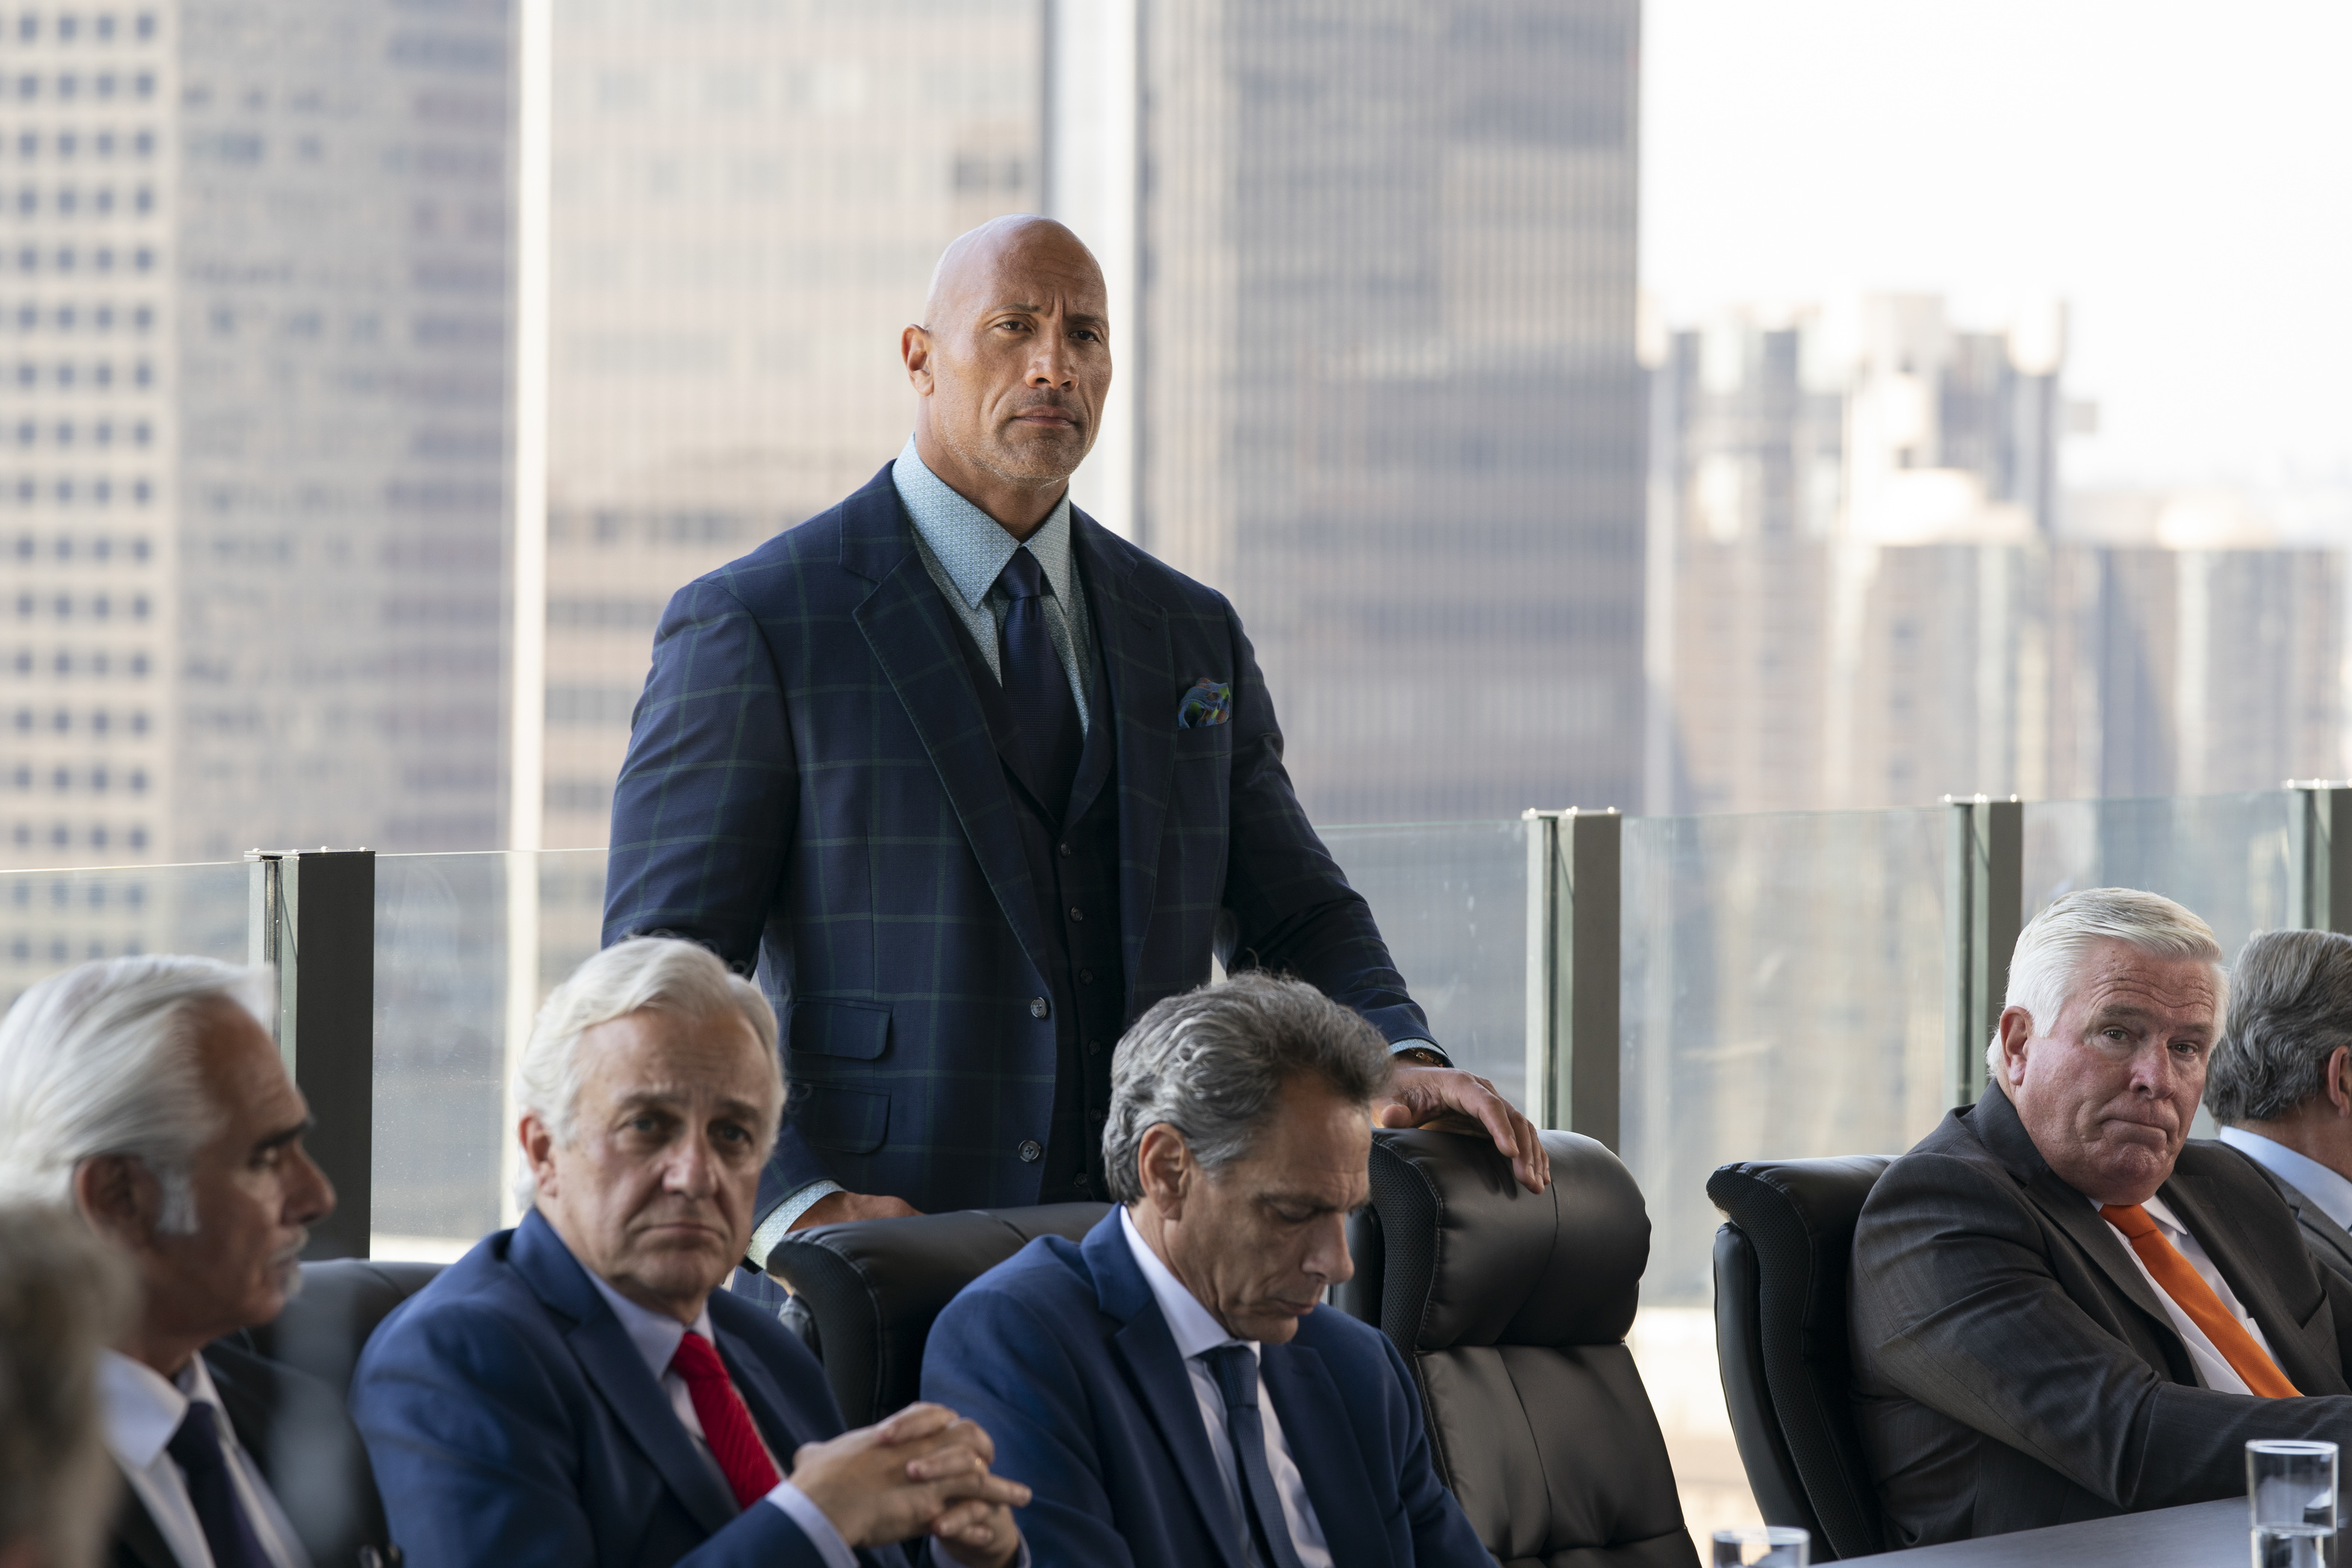 'Ballers' Season 5, Episode 6 synopsis/review: 'A century-old institution'